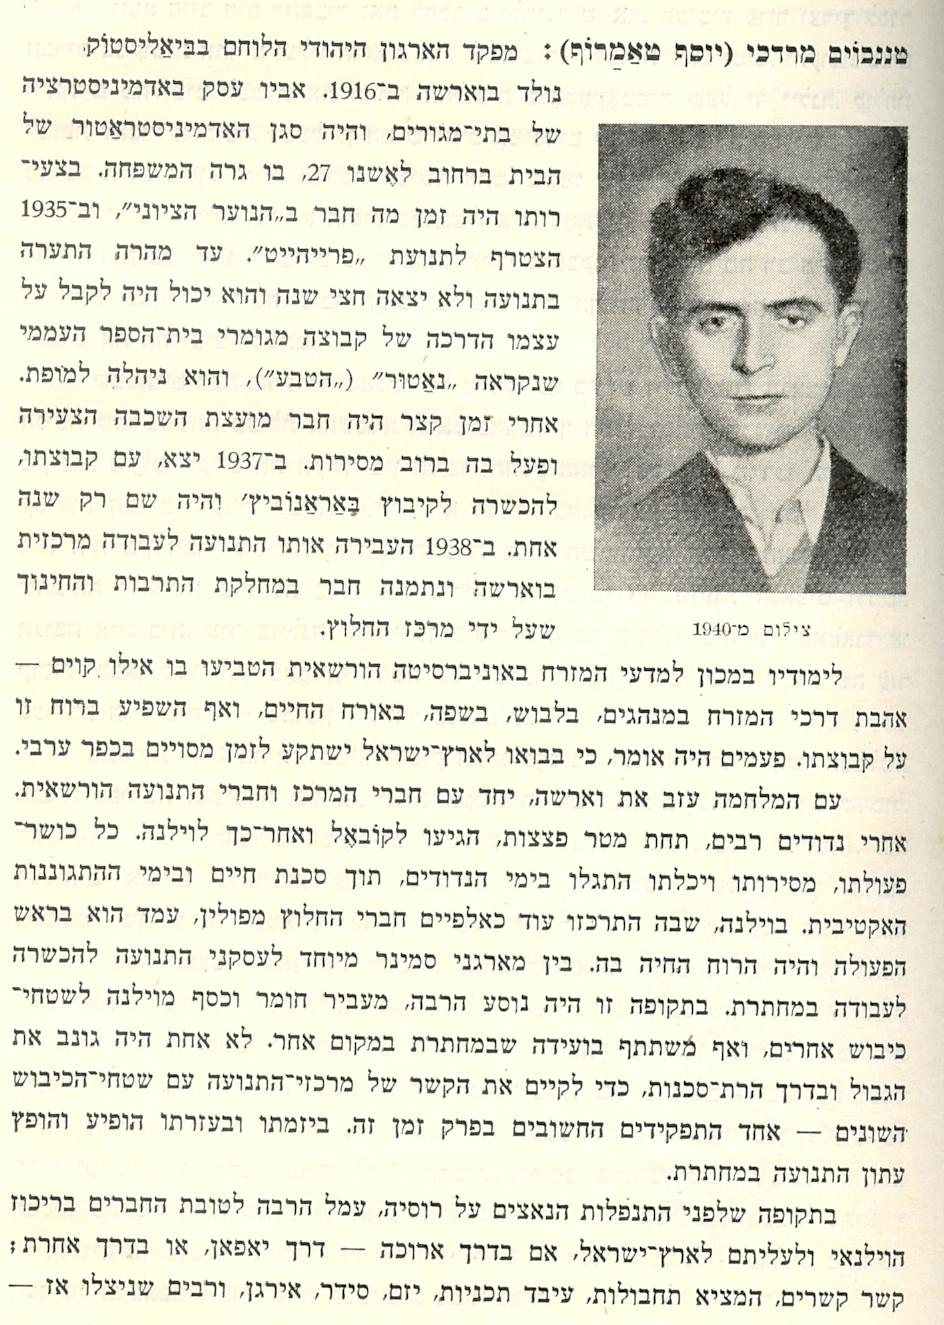 dr szymon datner the fight and the destruction of ghetto bia ystok page 302